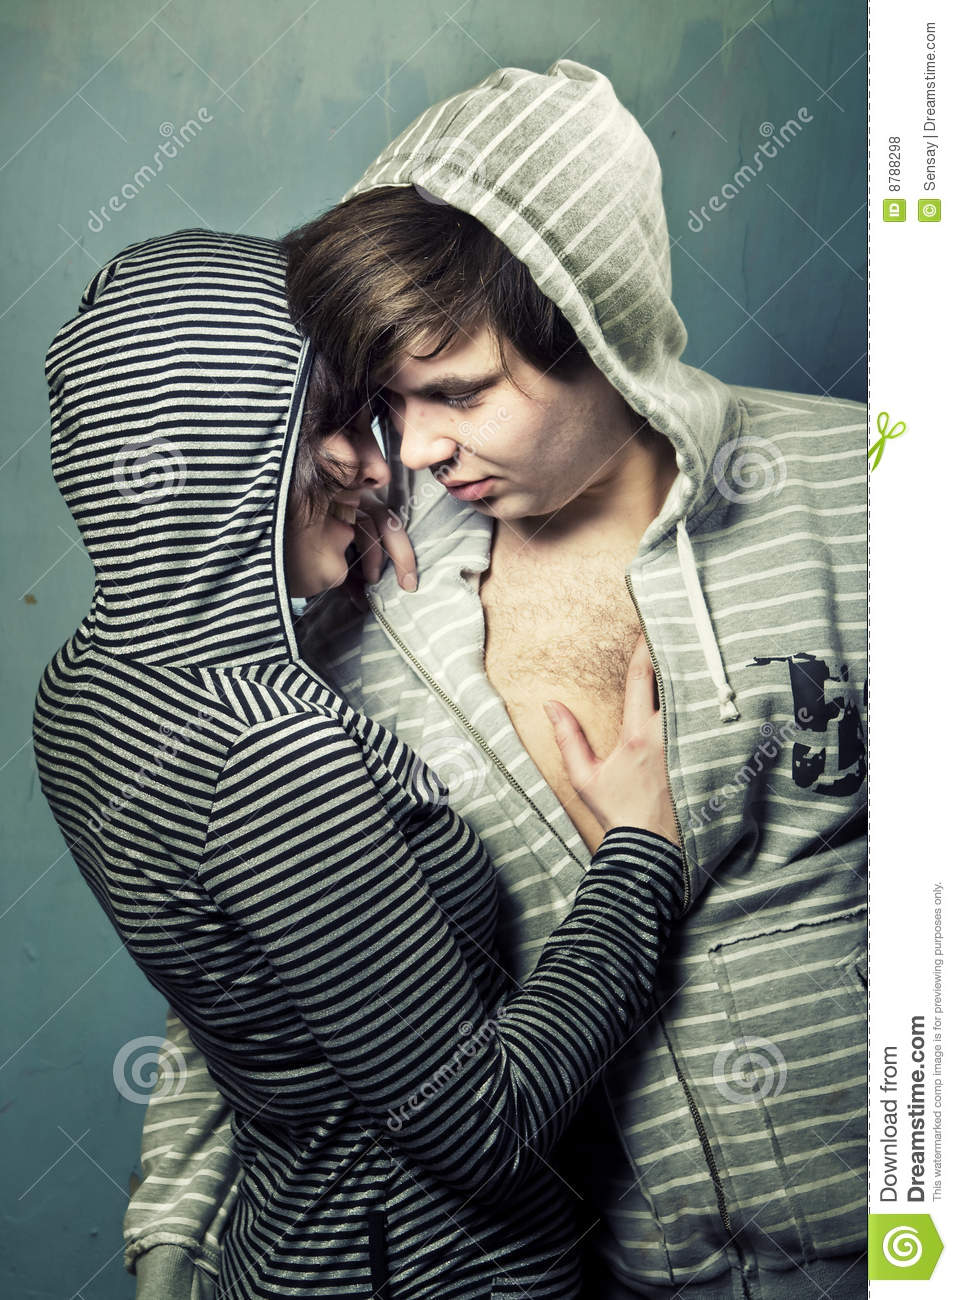 Young teenagers embracing